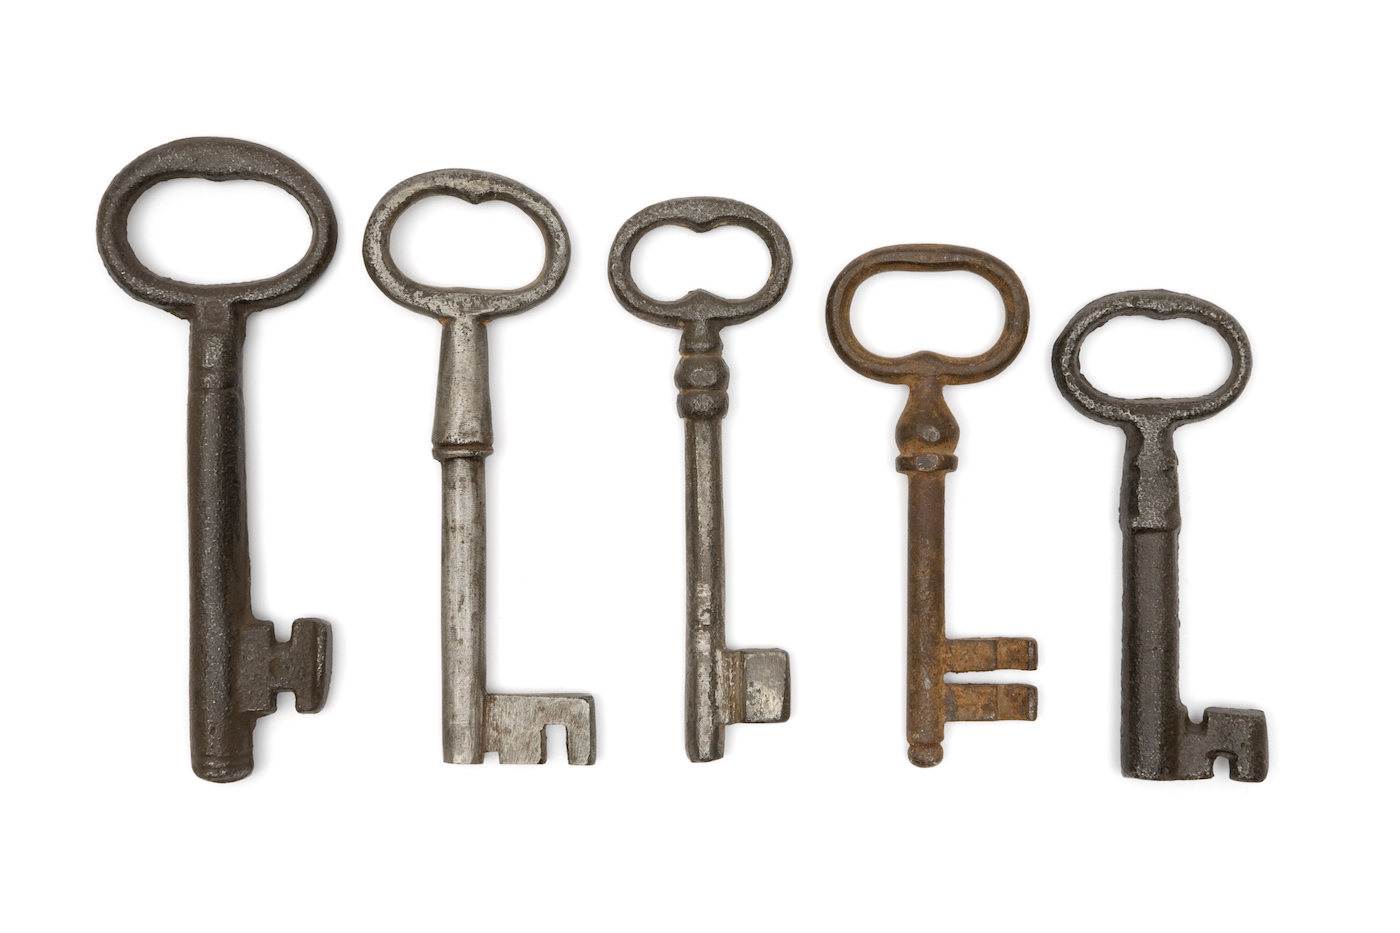 Rusty old keys isolated on a white background.